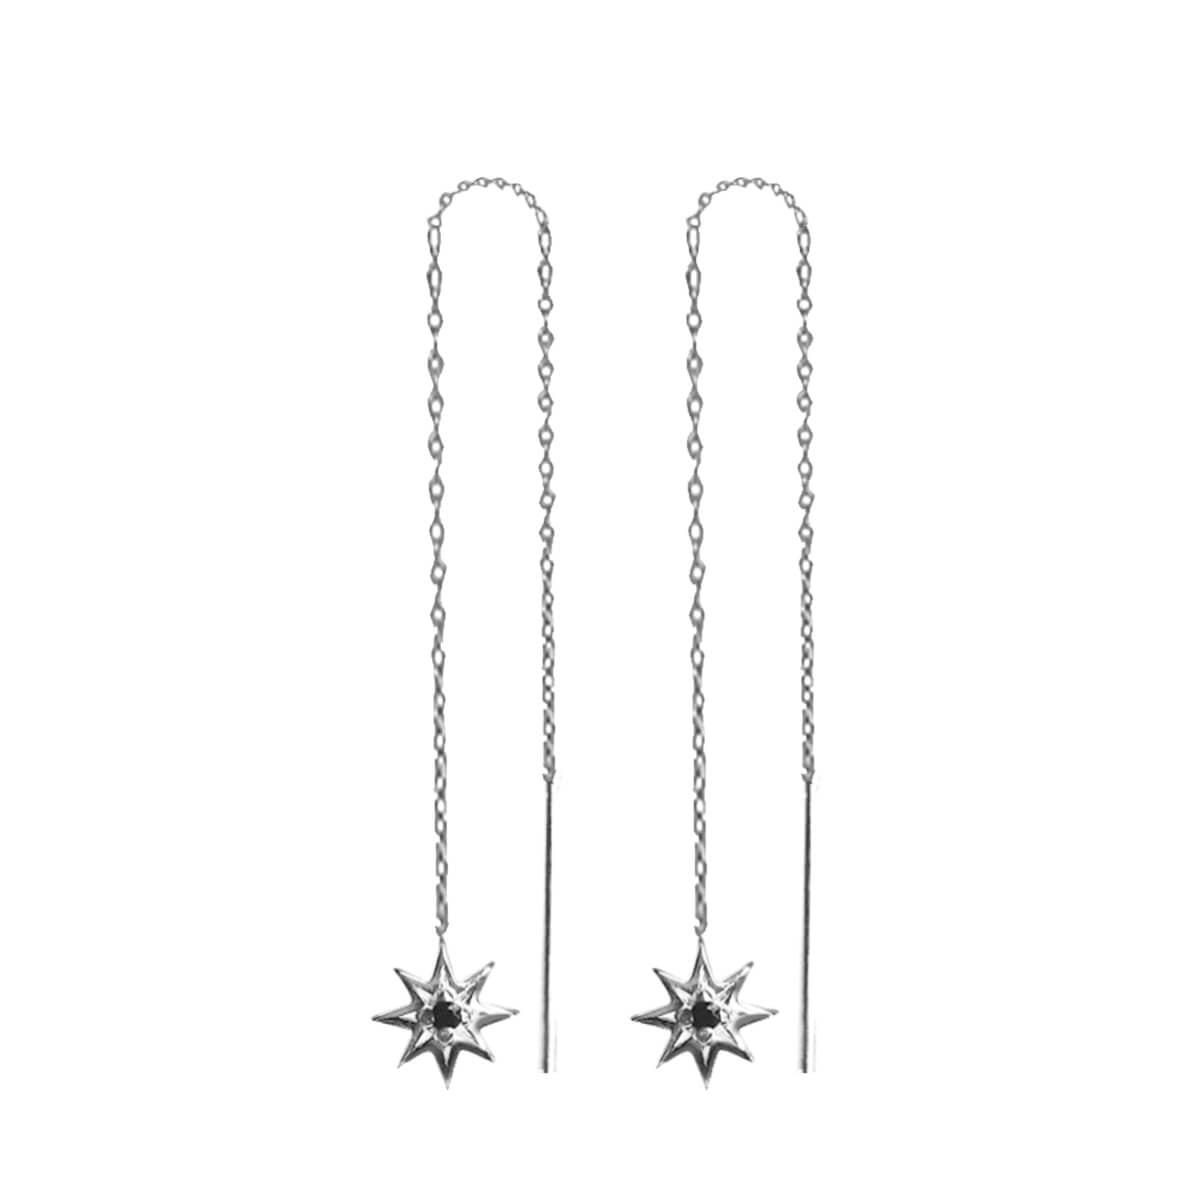 Falling Star Thread Earrings In Sterling Silver Murkani